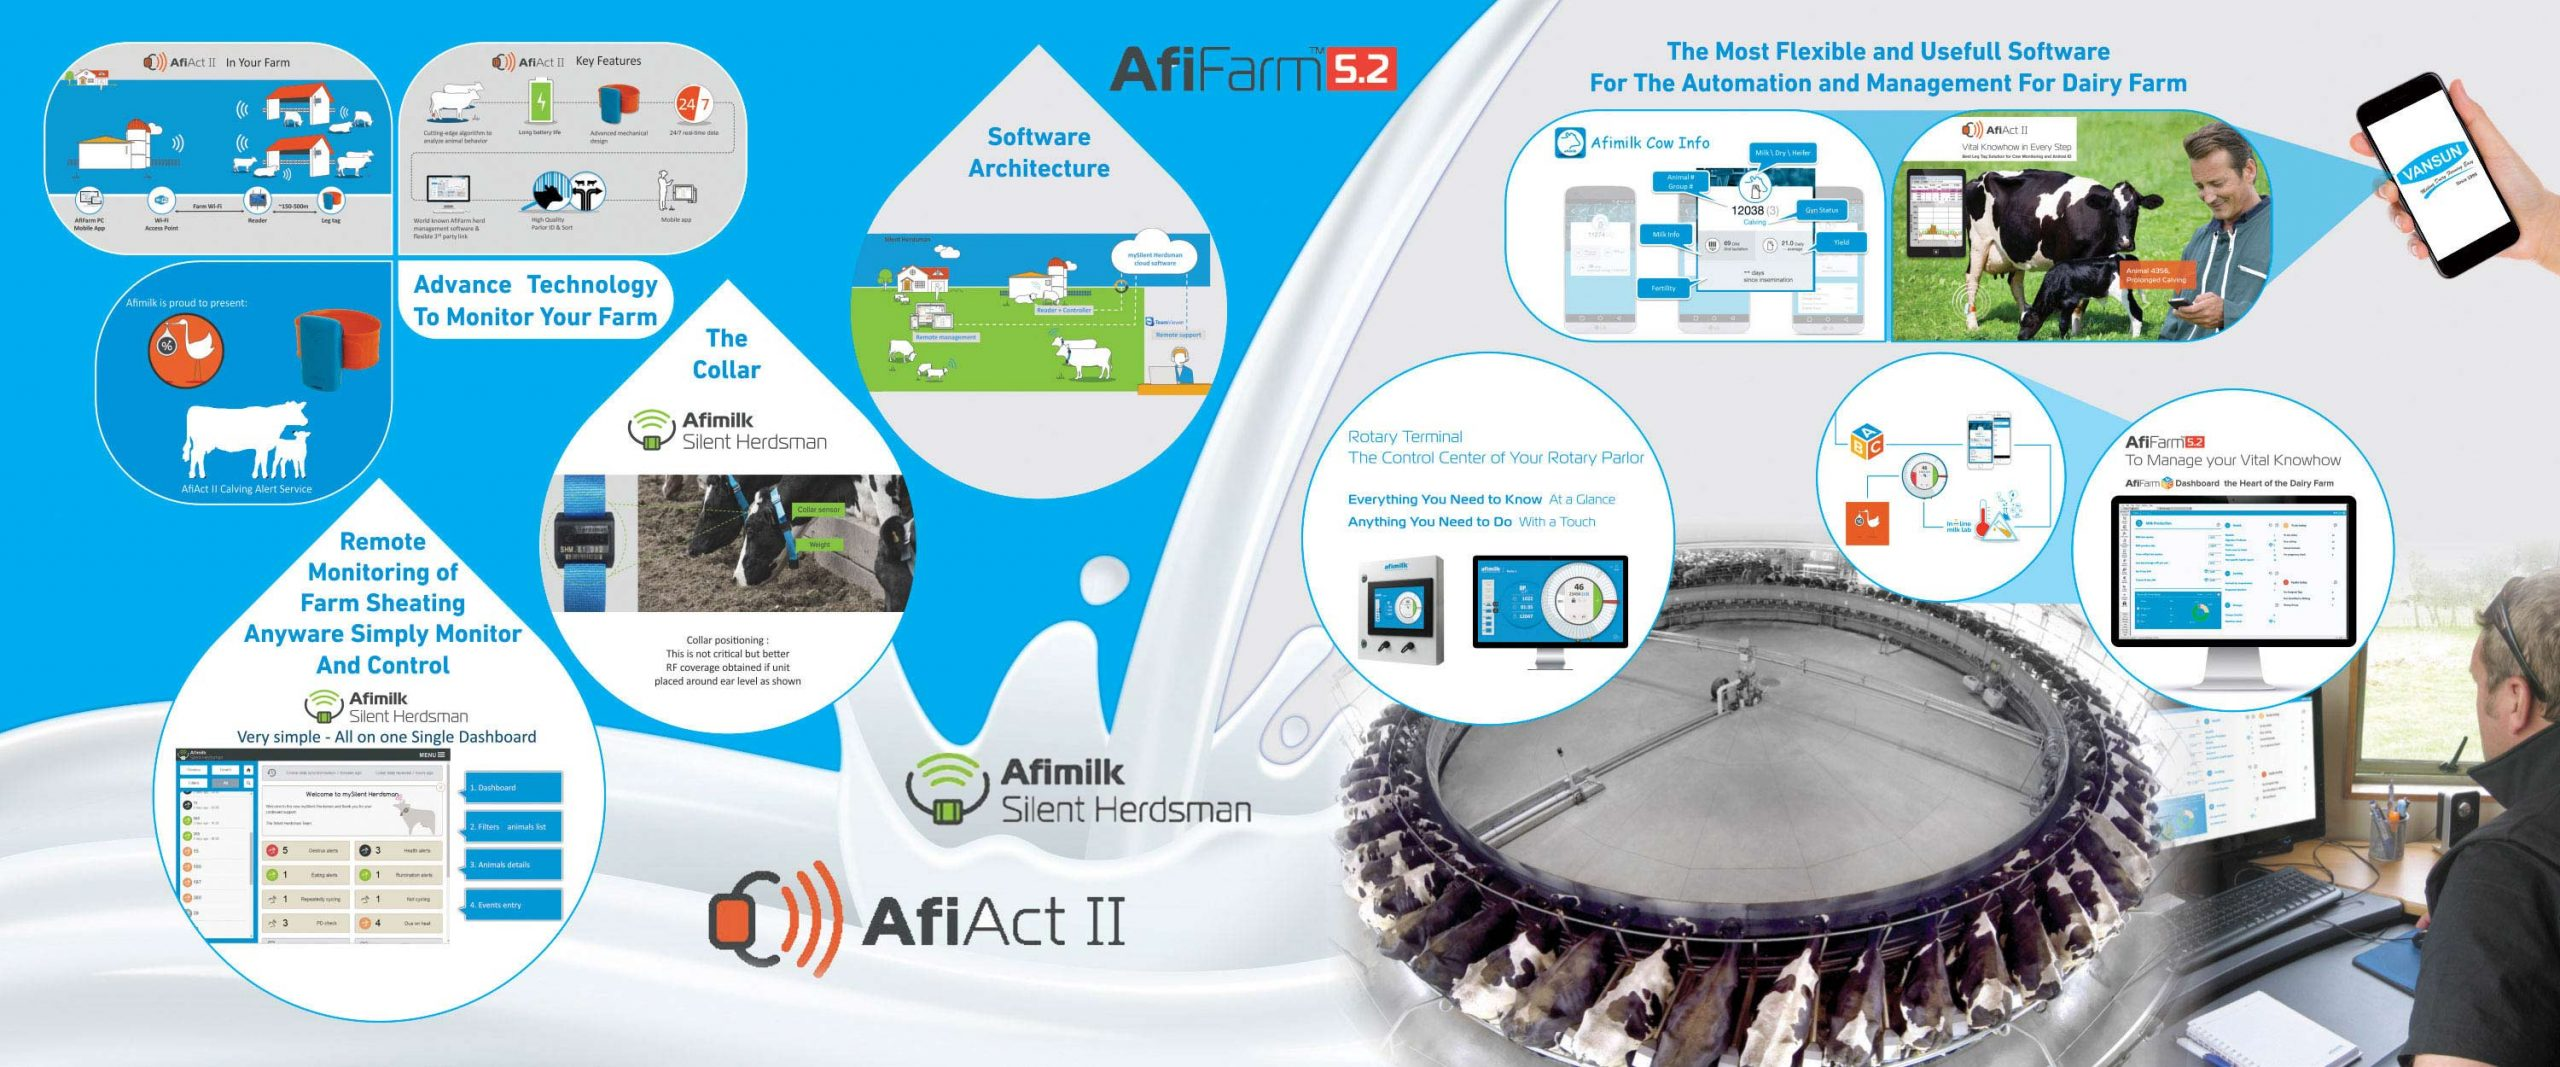 AfiFarm Cow Monitoring Solution Banner